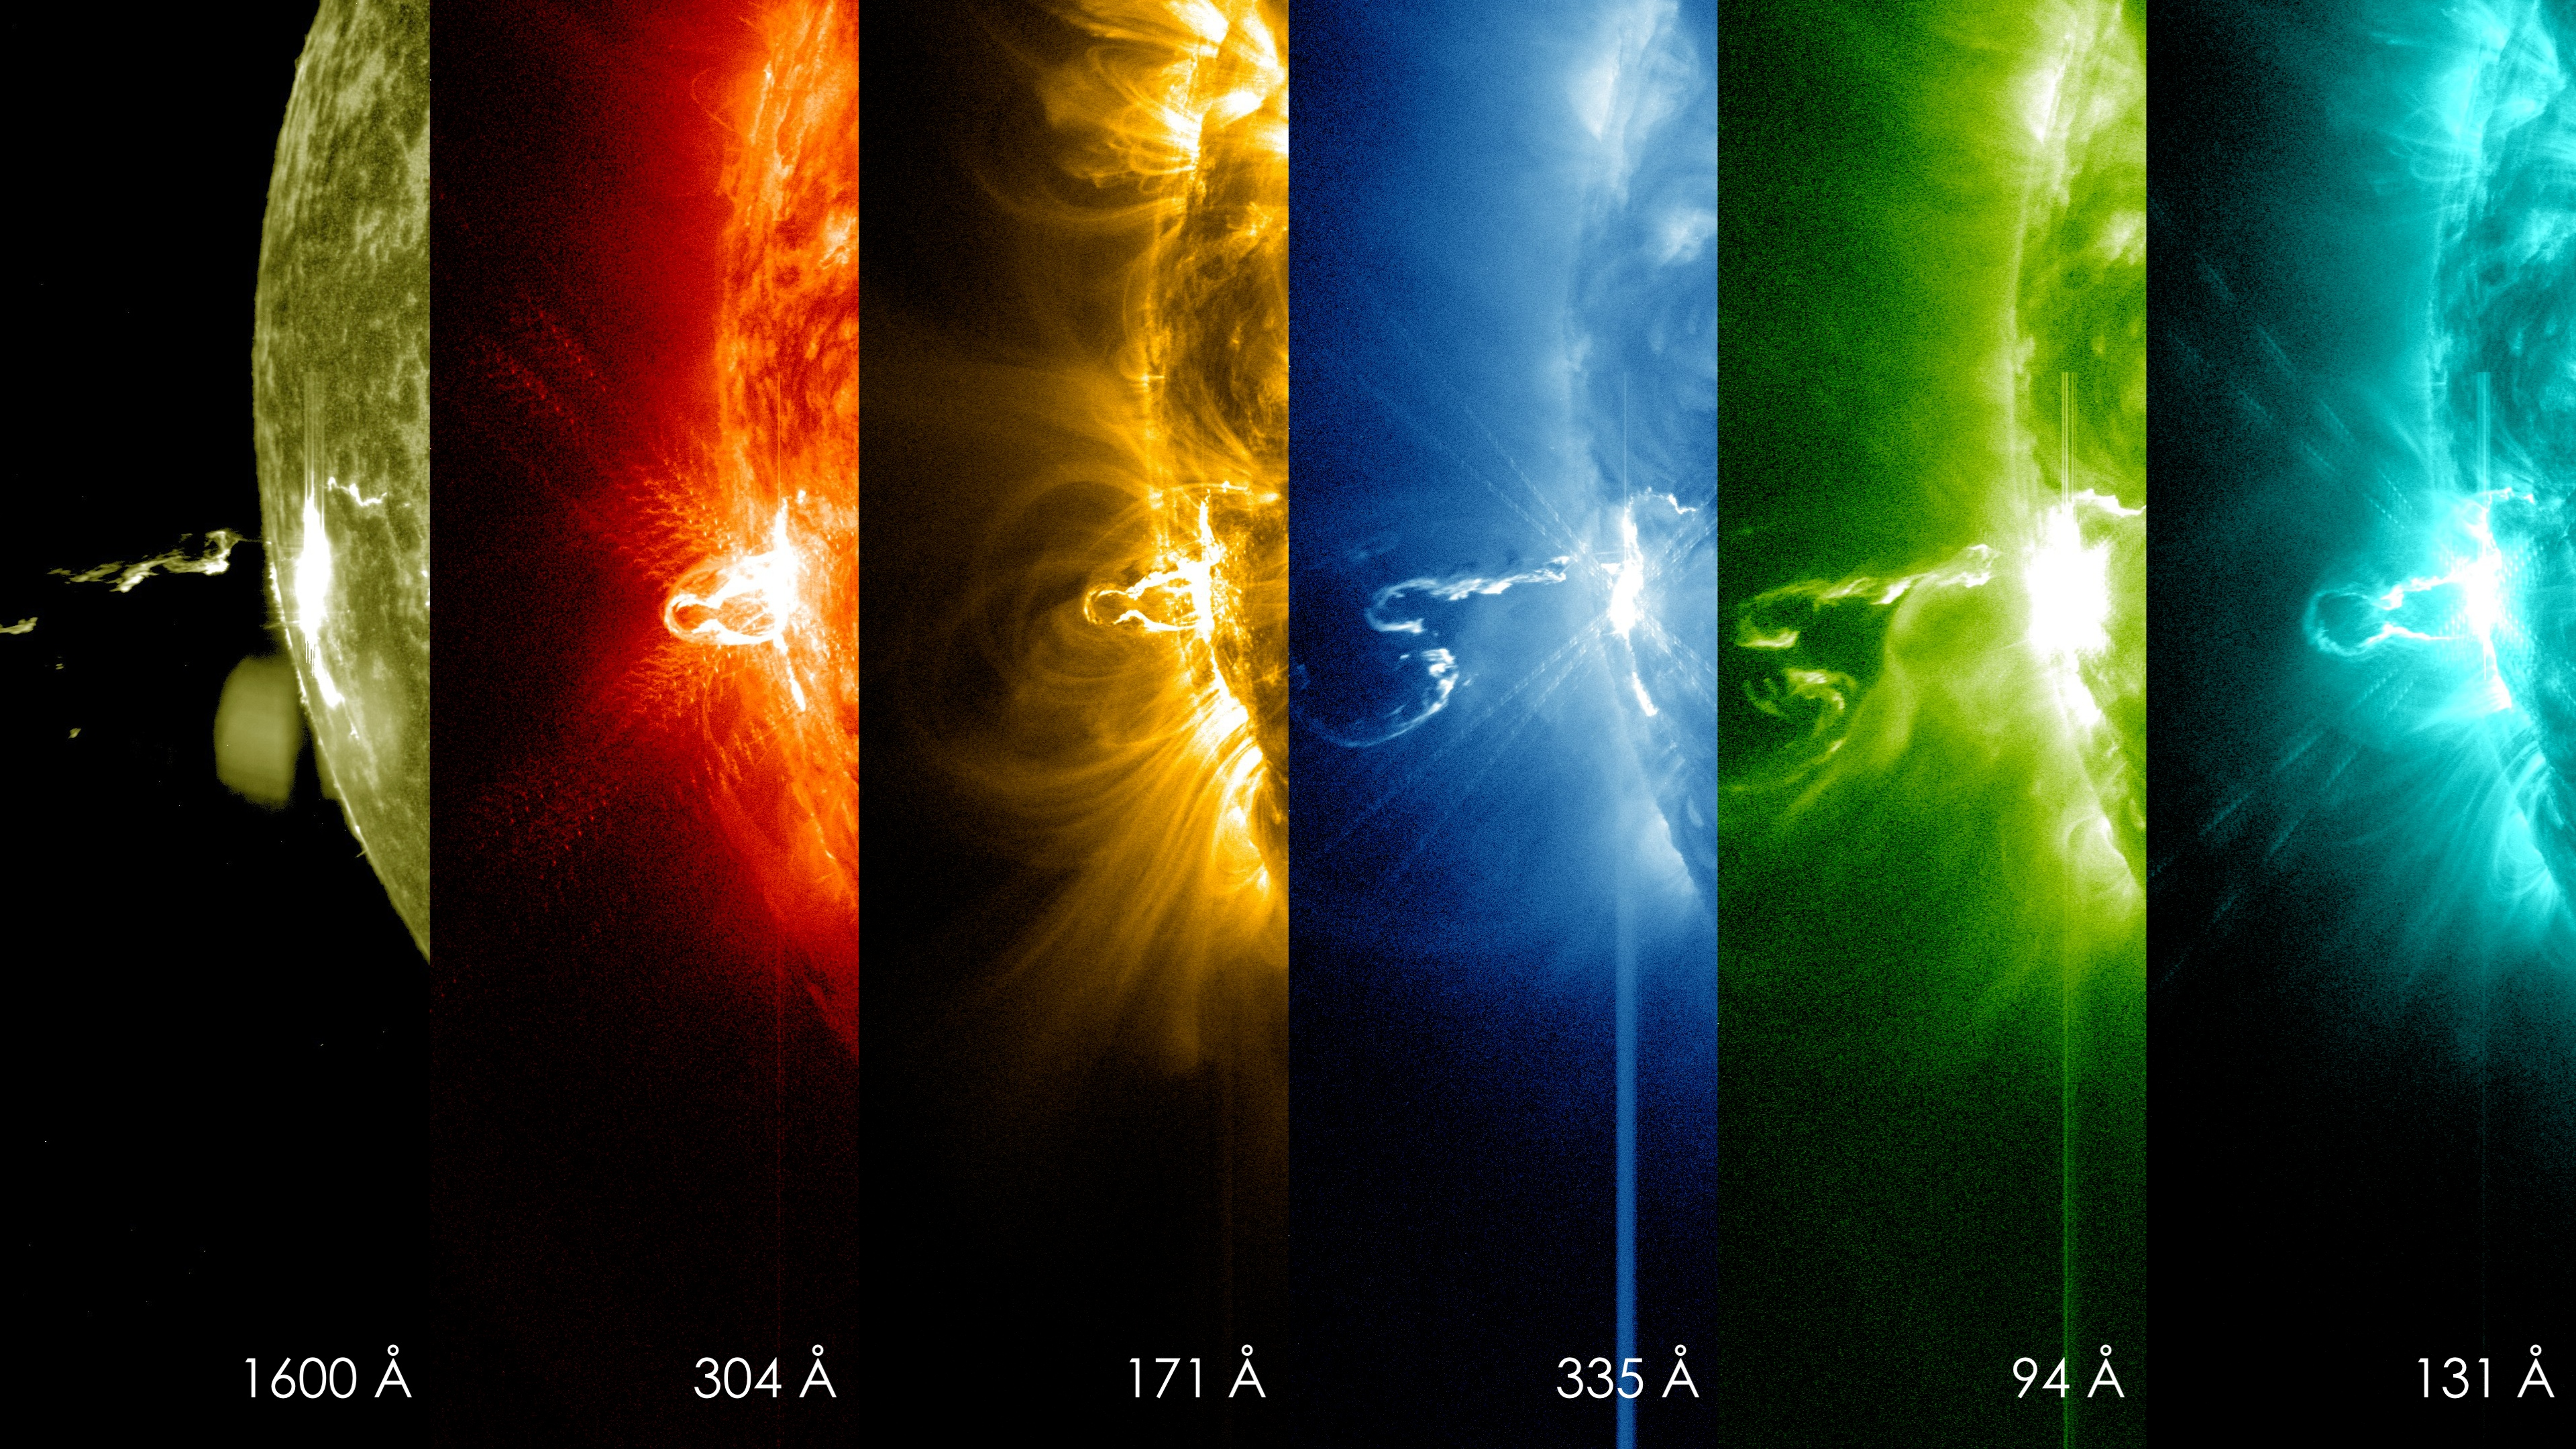 First Moments Of A Solar Flare In Different Wavelengths Of